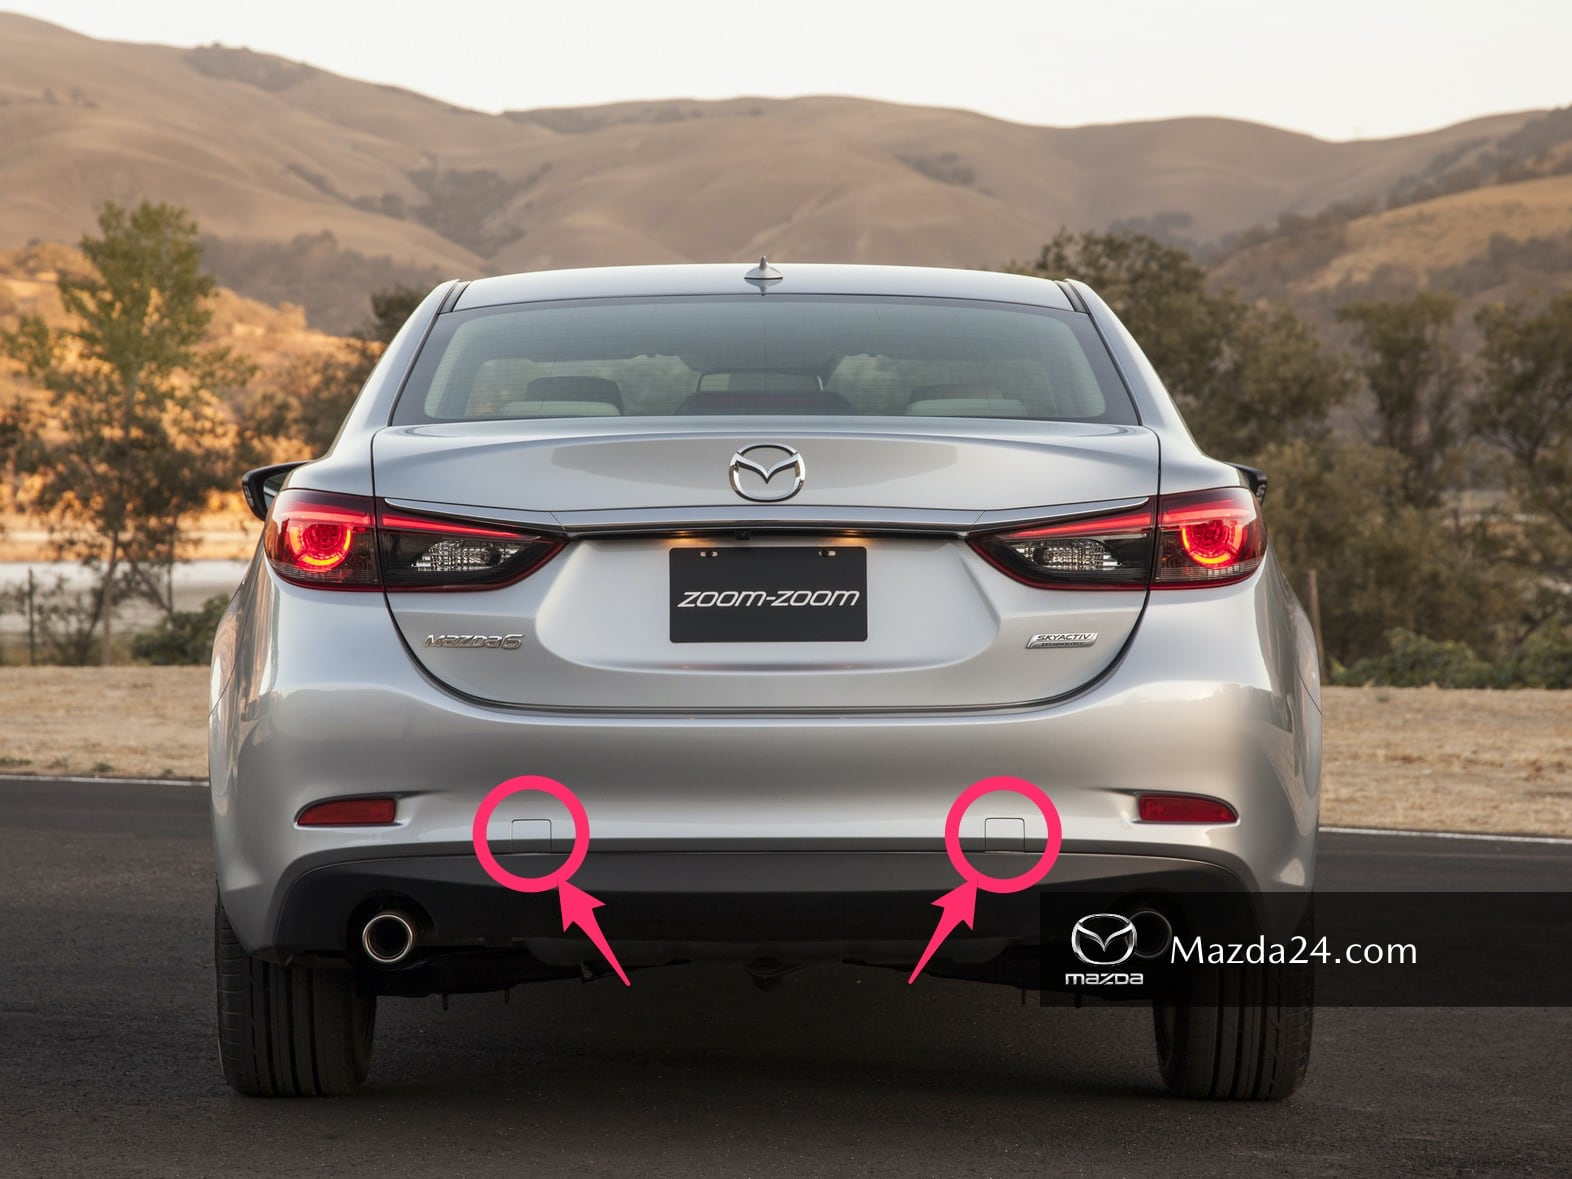 Mazda 6 (2012-2017) rear bumper tow hook covers